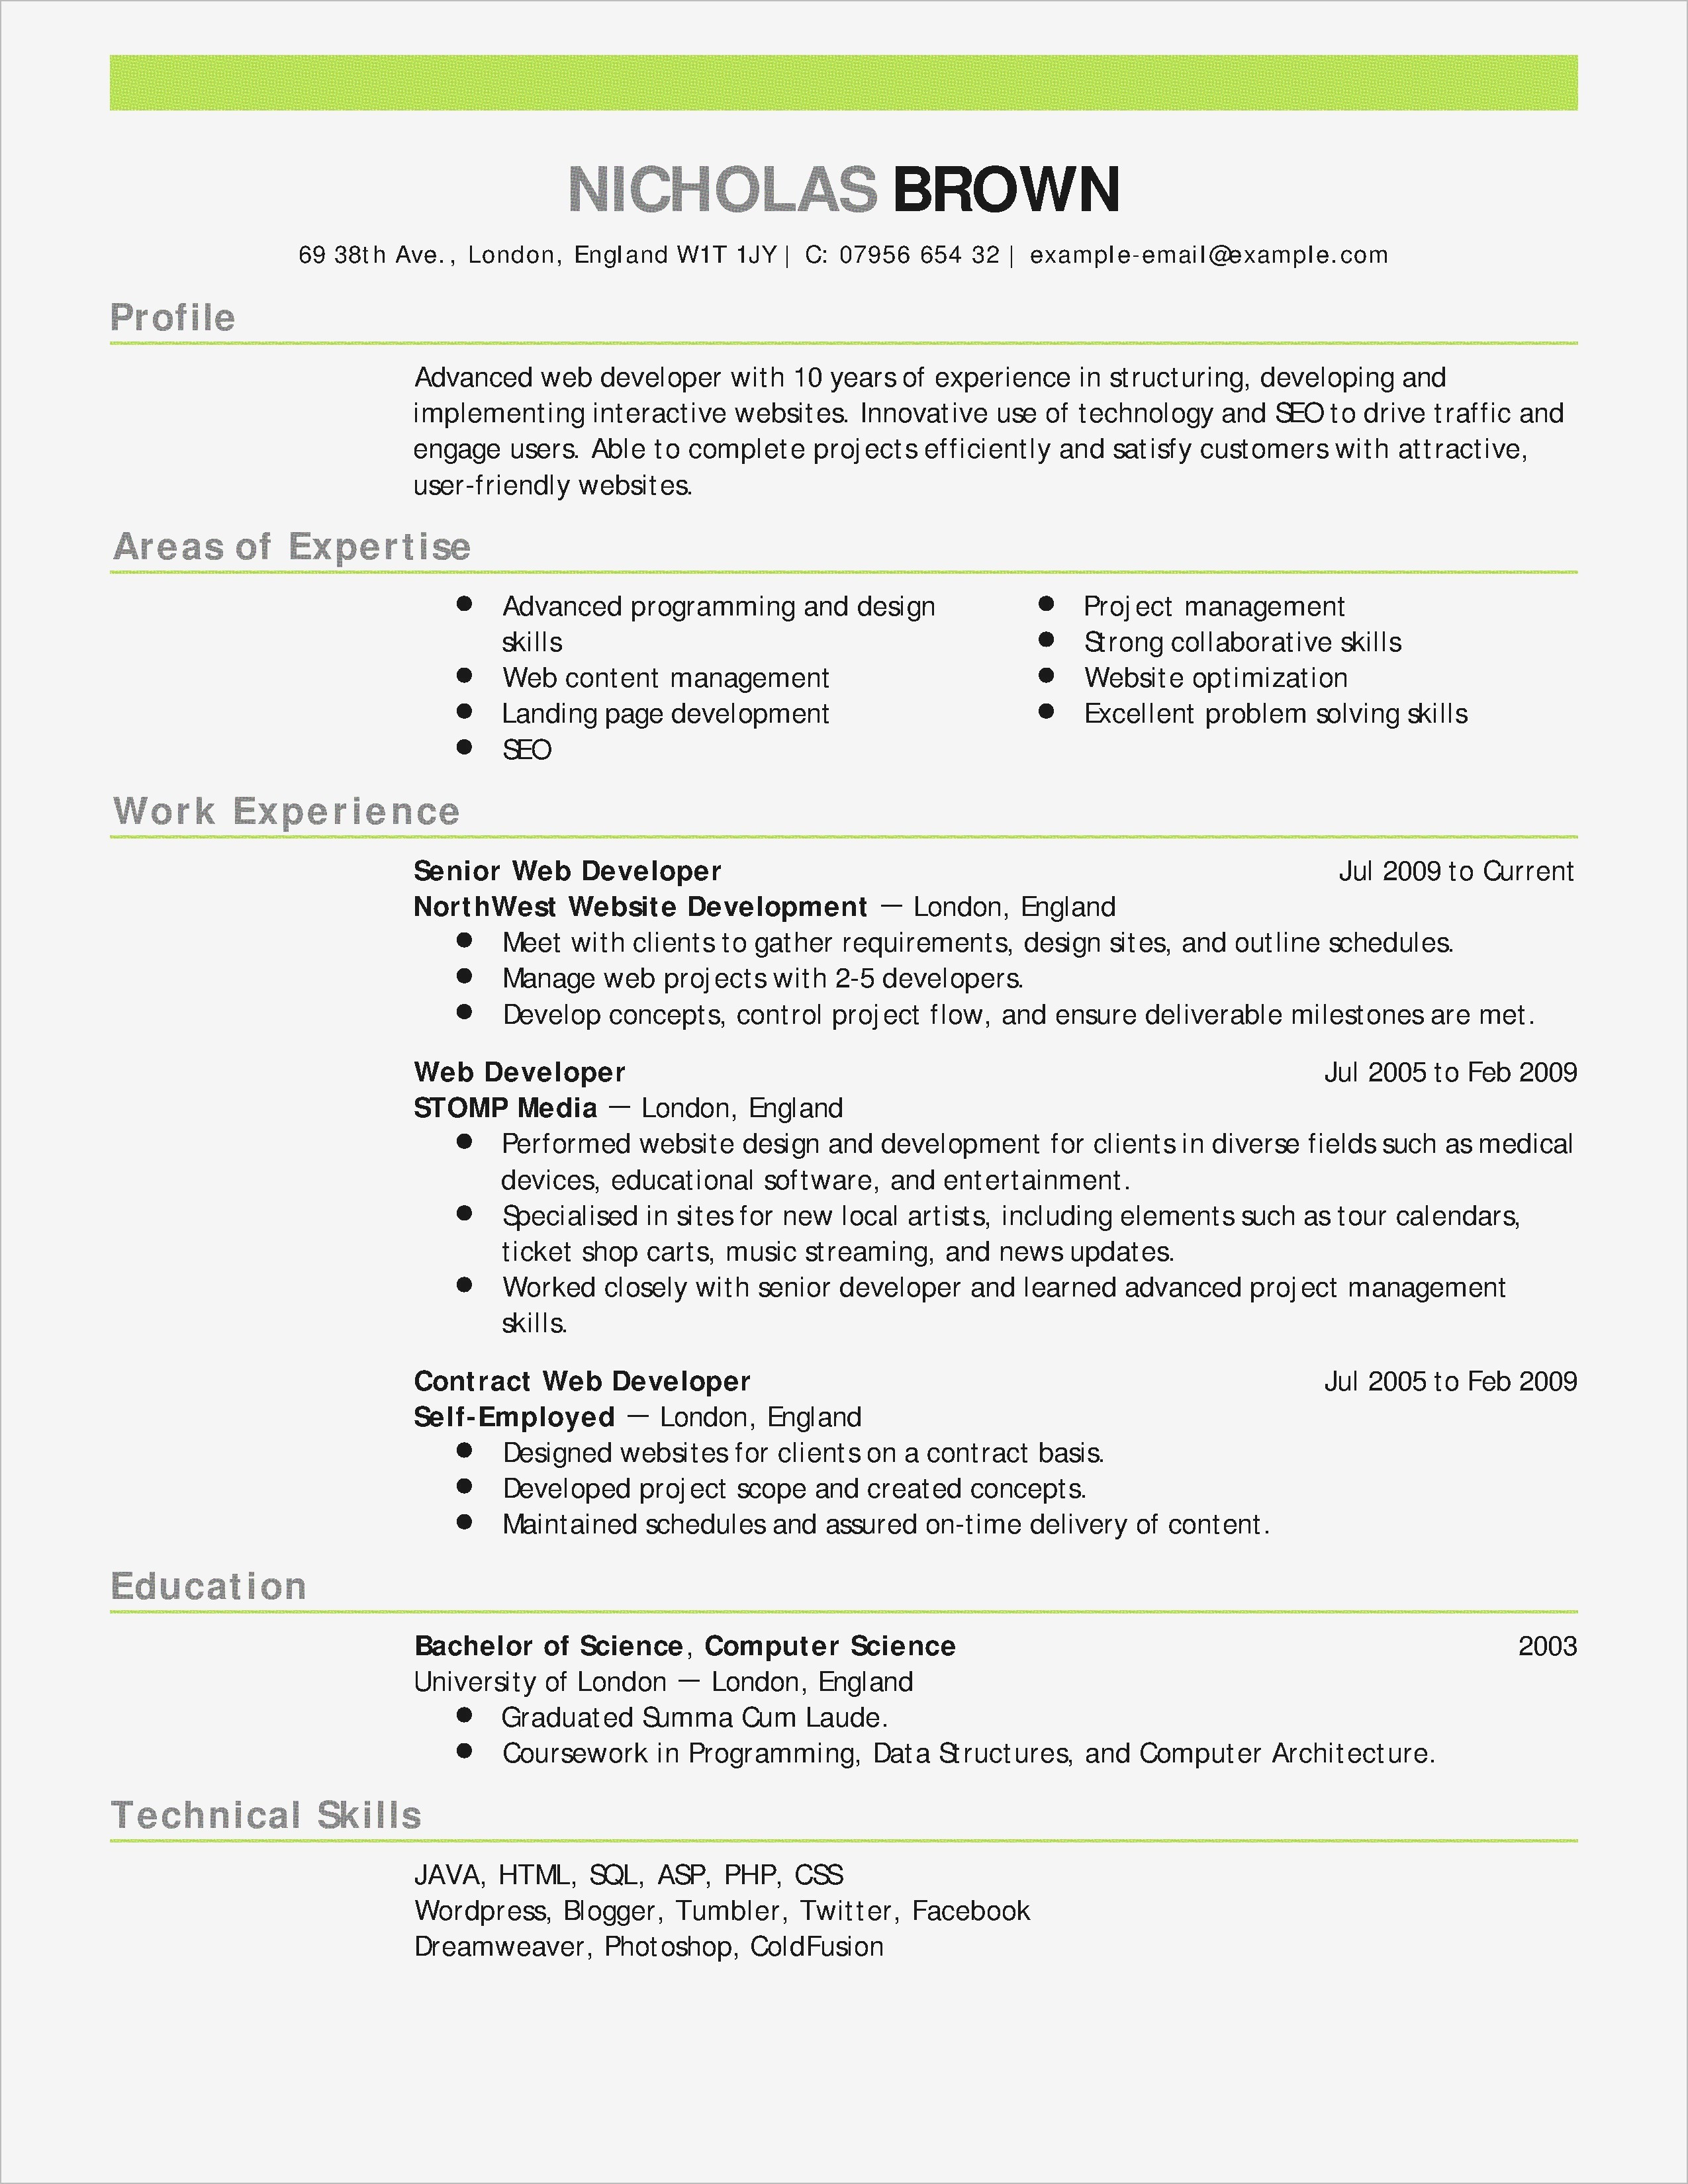 Teacher Cover Letter Template Free - Maintenance Experience Resume Reference Elegant Cover Letter Writing